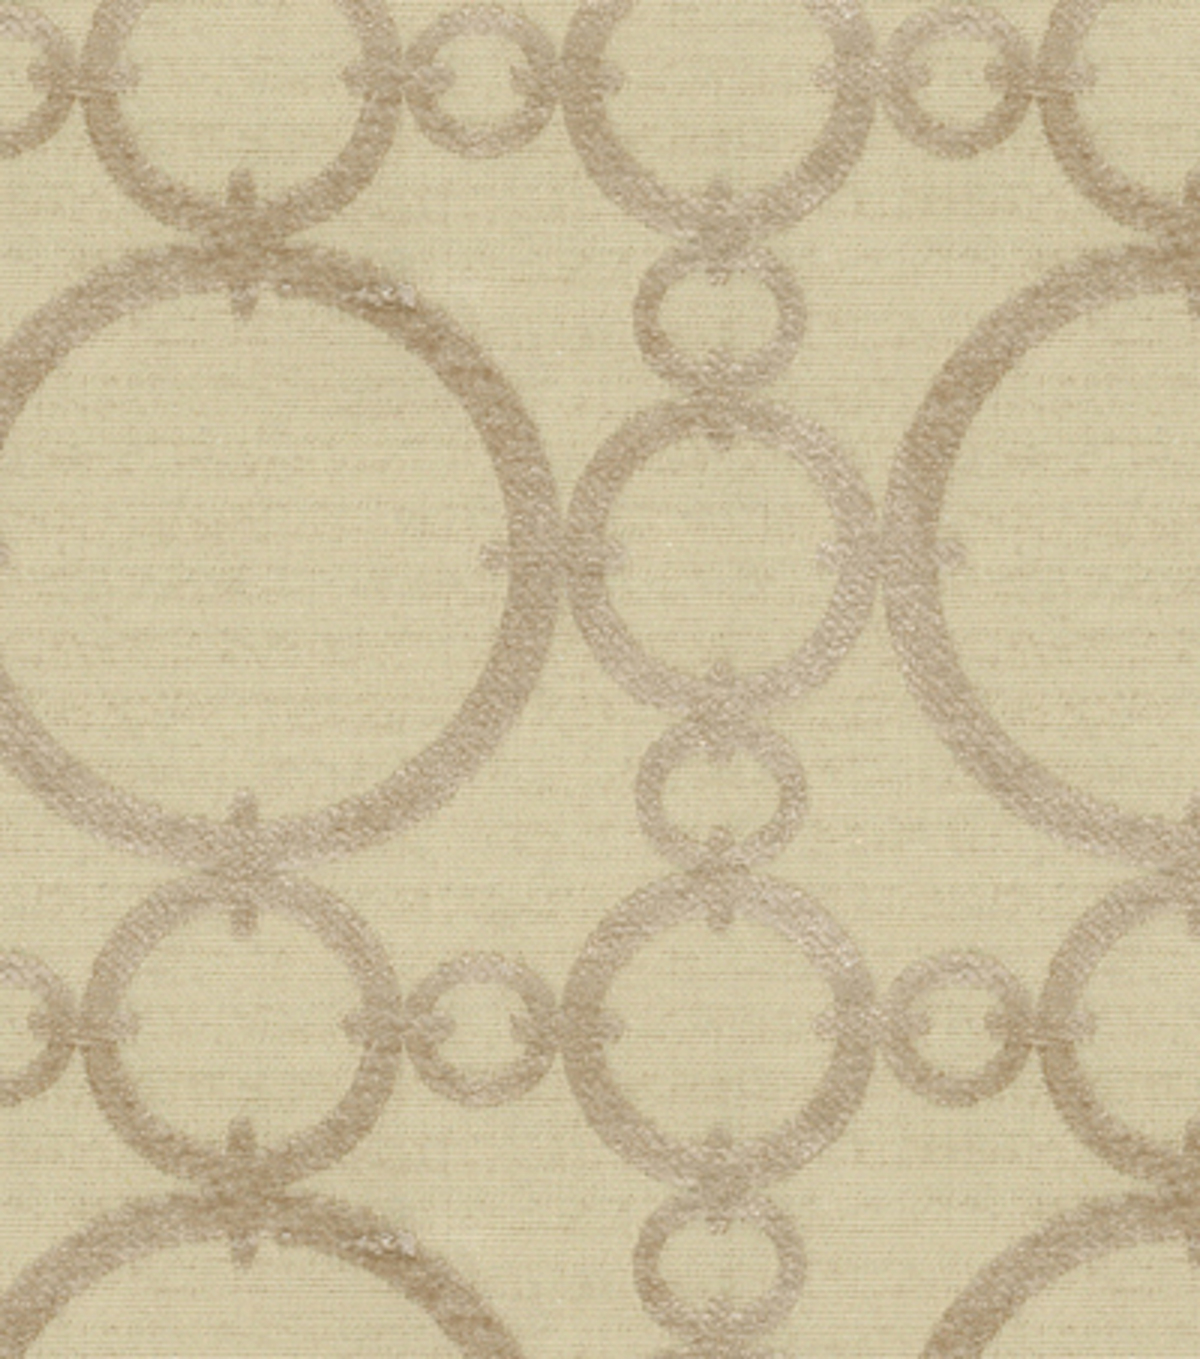 Waverly Multi-Purpose Decor Fabric 55\u0022-Connected/Shimmer